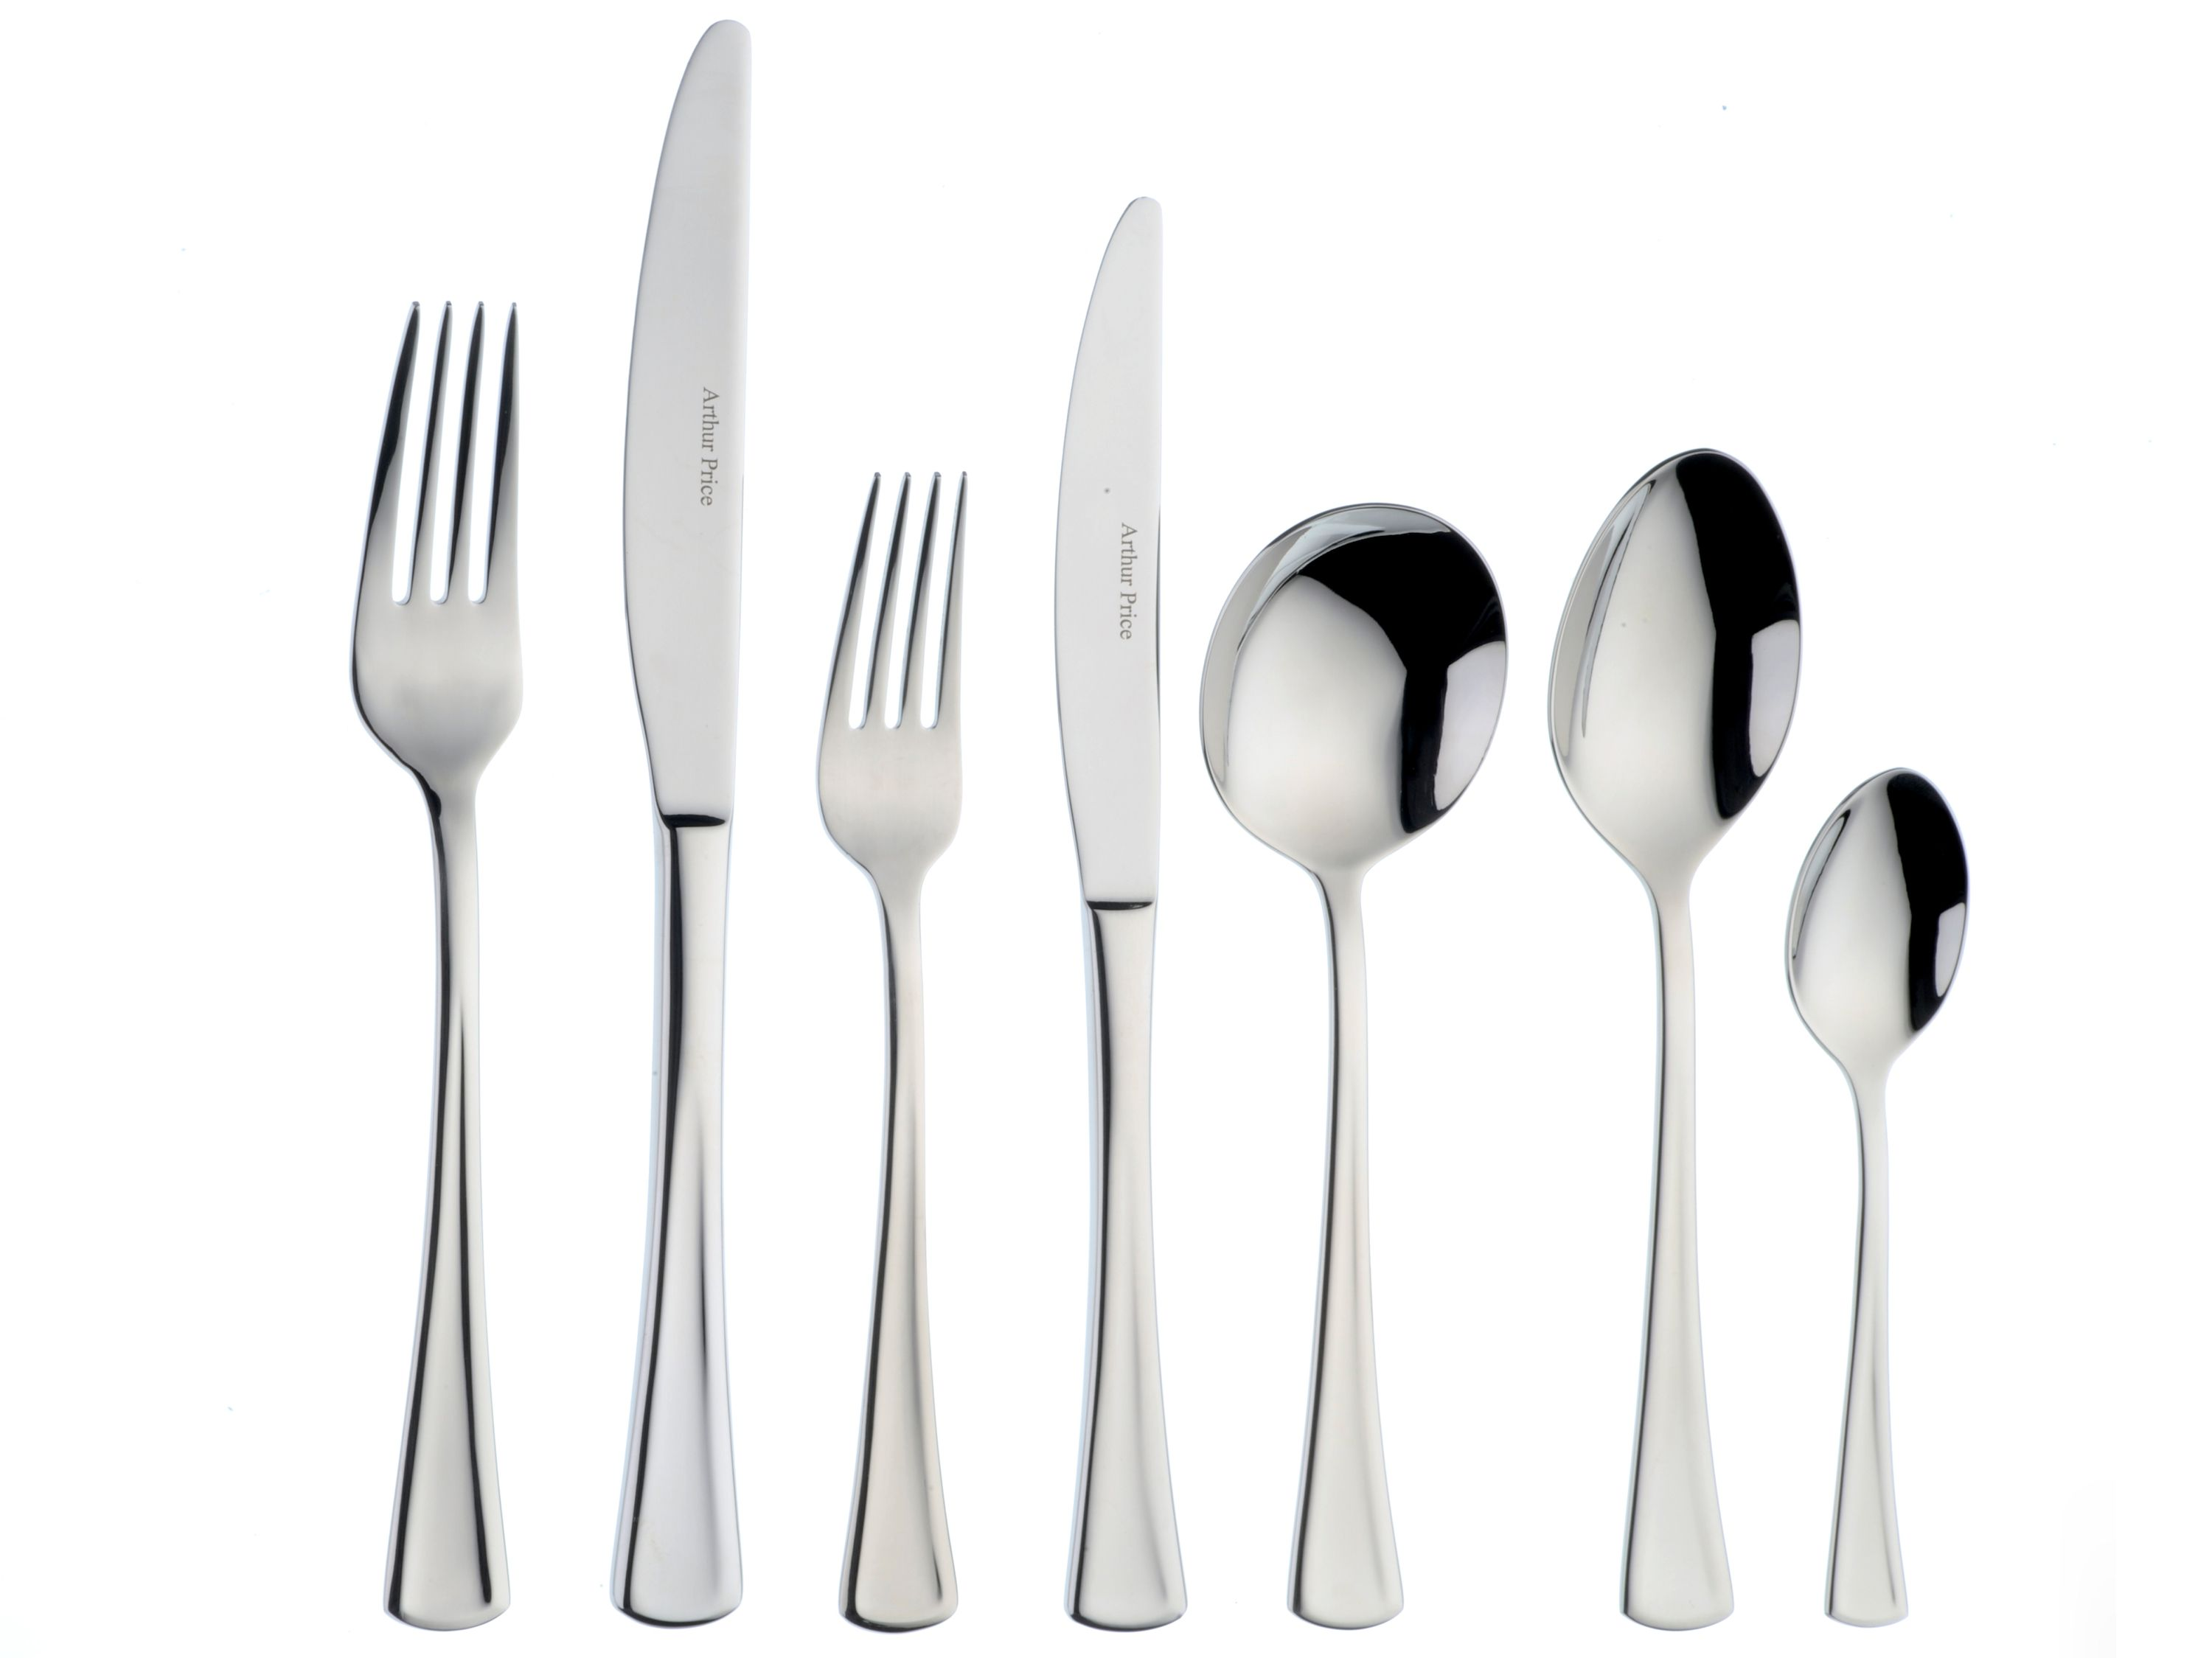 Apollo stainless steel 7 pce place setting